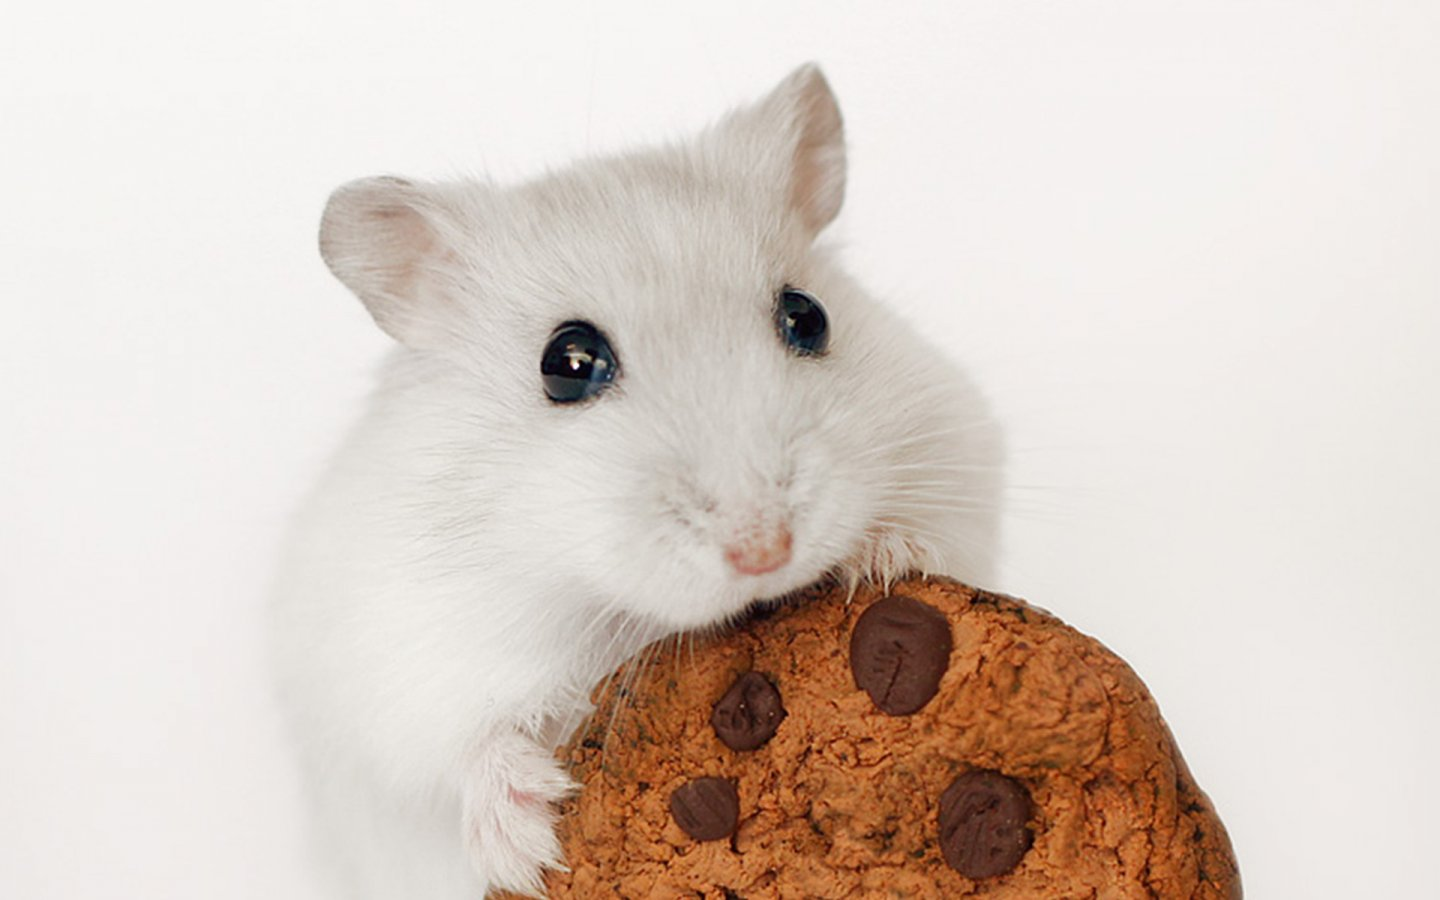 Cute Hamster Wallpaper Windows Download 10655 Wallpaper Cool 1440x900